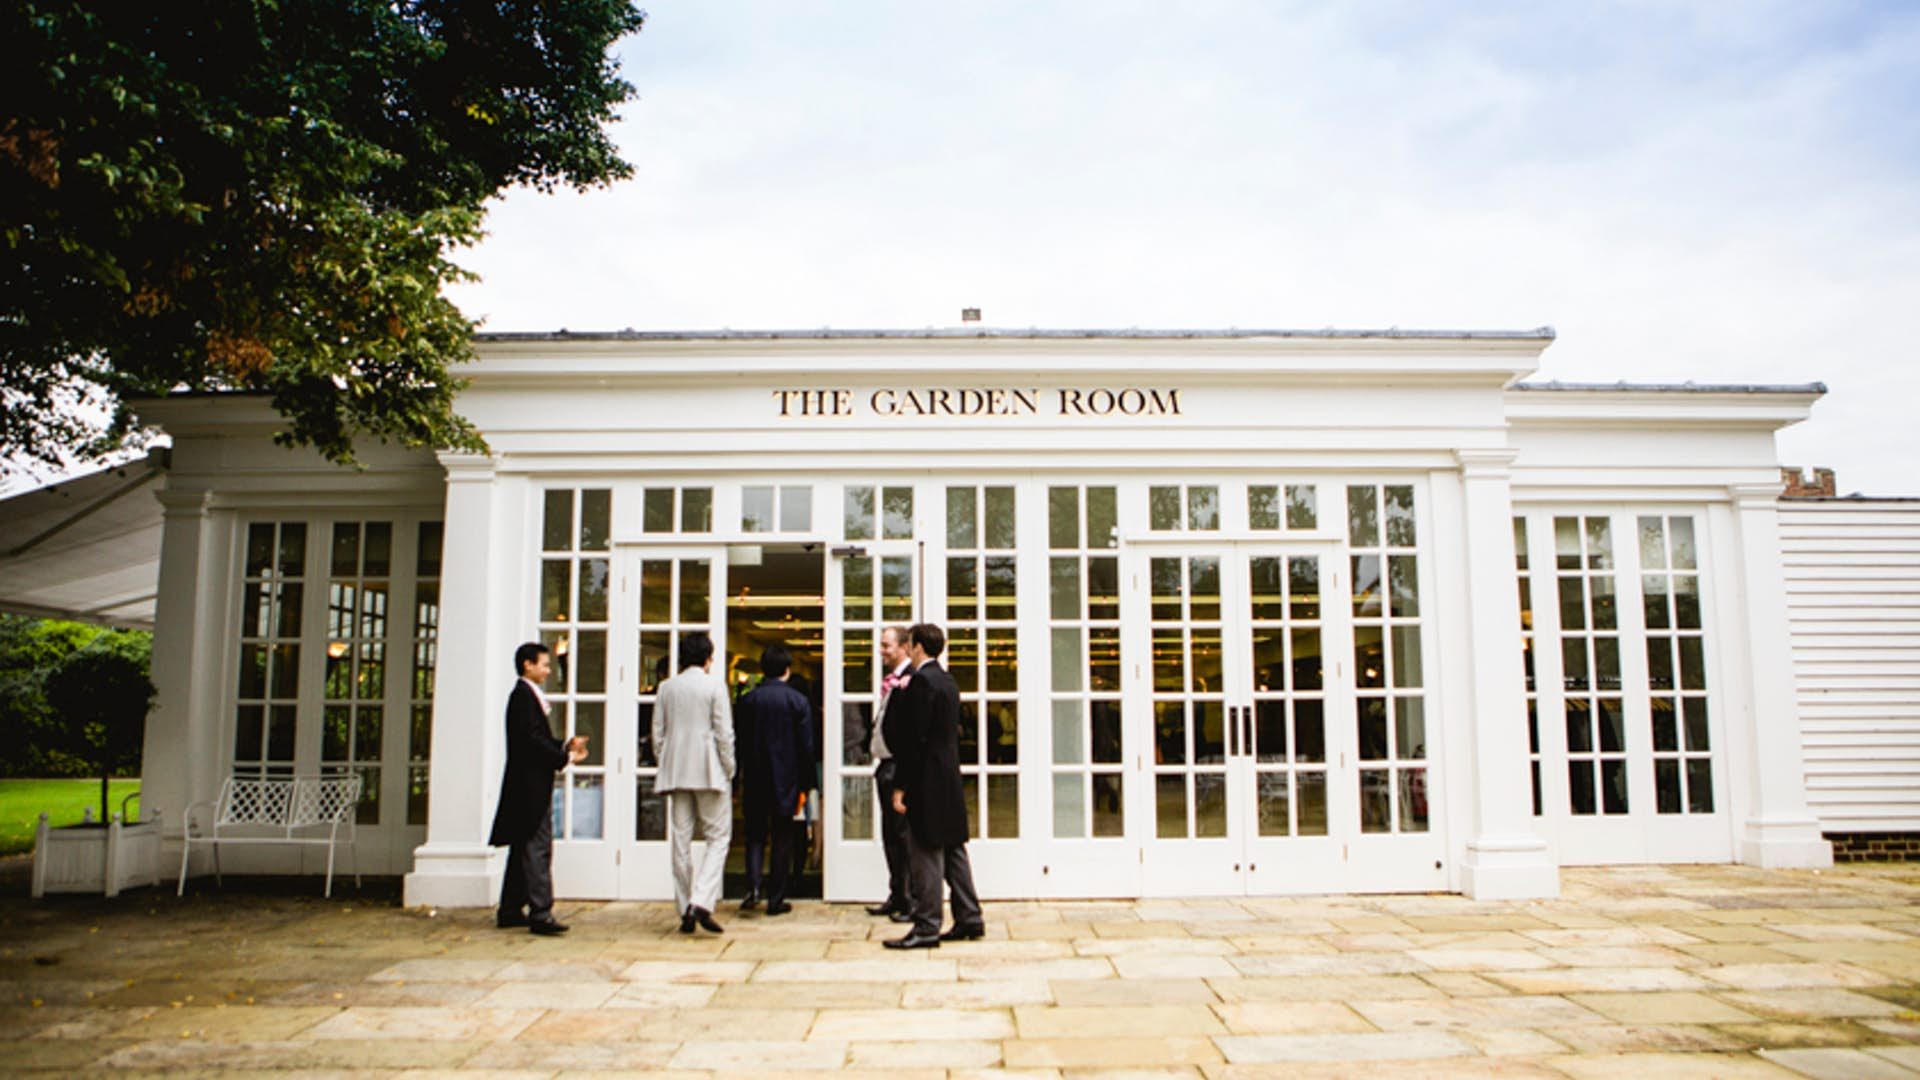 The garden room weddings hire hampton court palace for The garden room